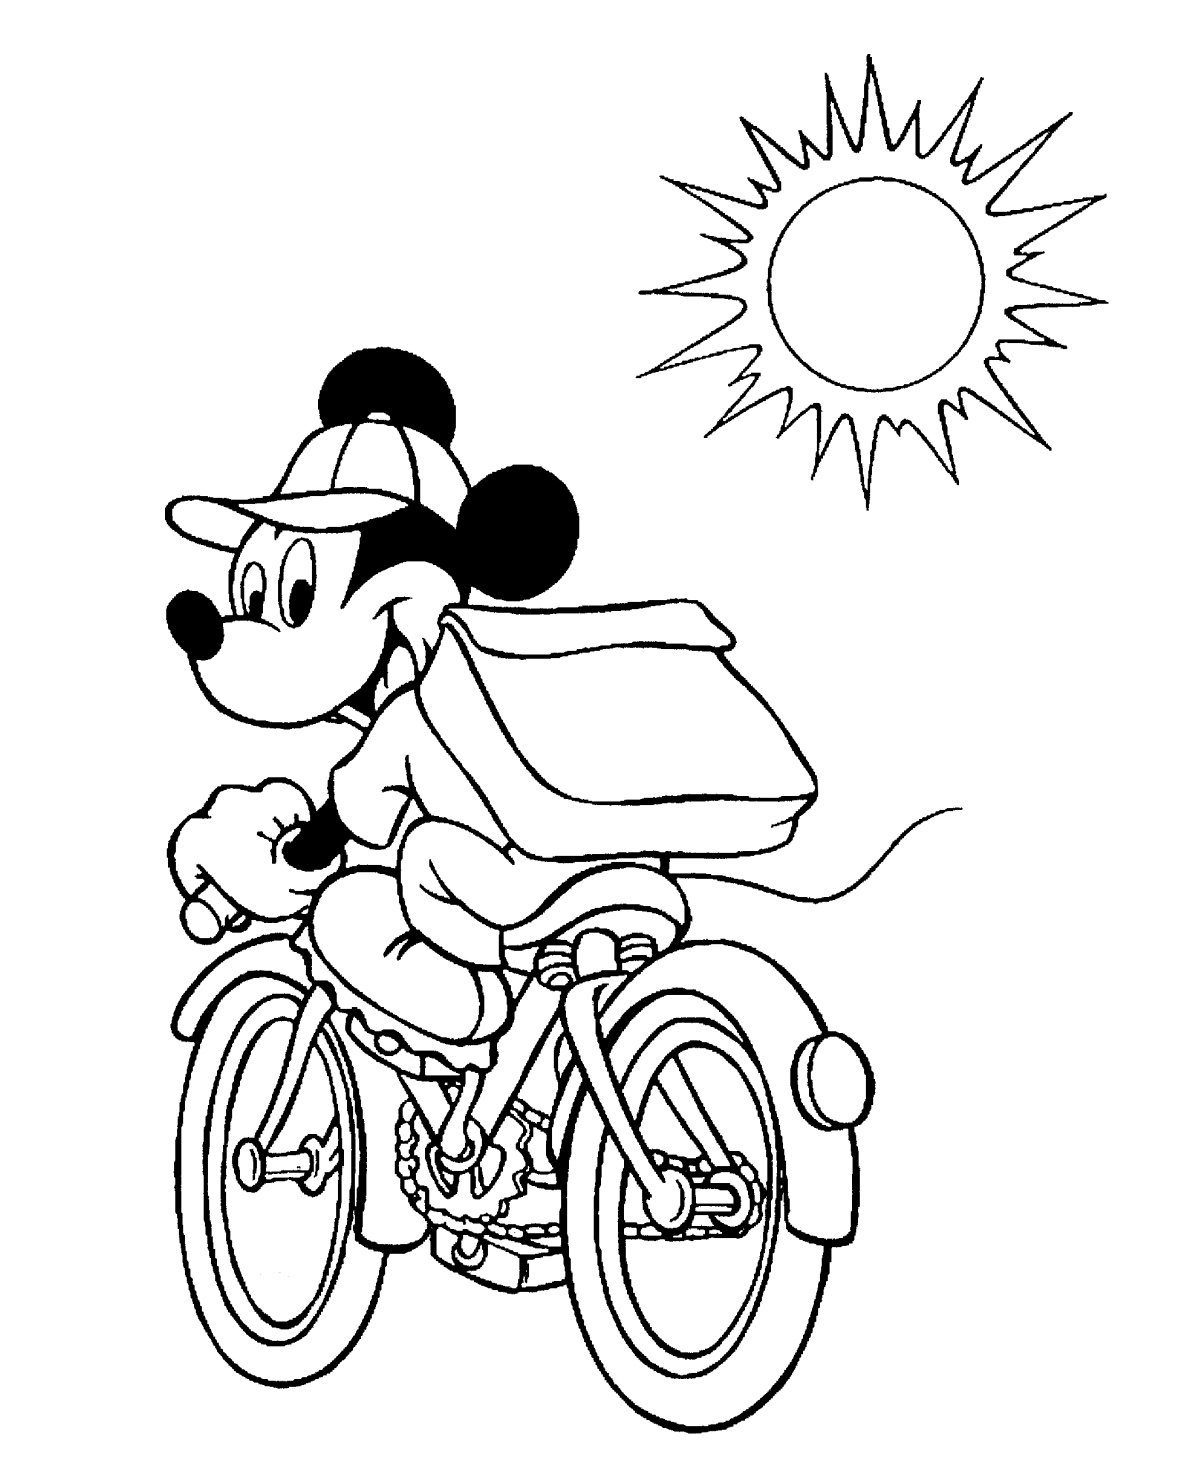 pe coloring pages - mickey mouse pe bicicleta